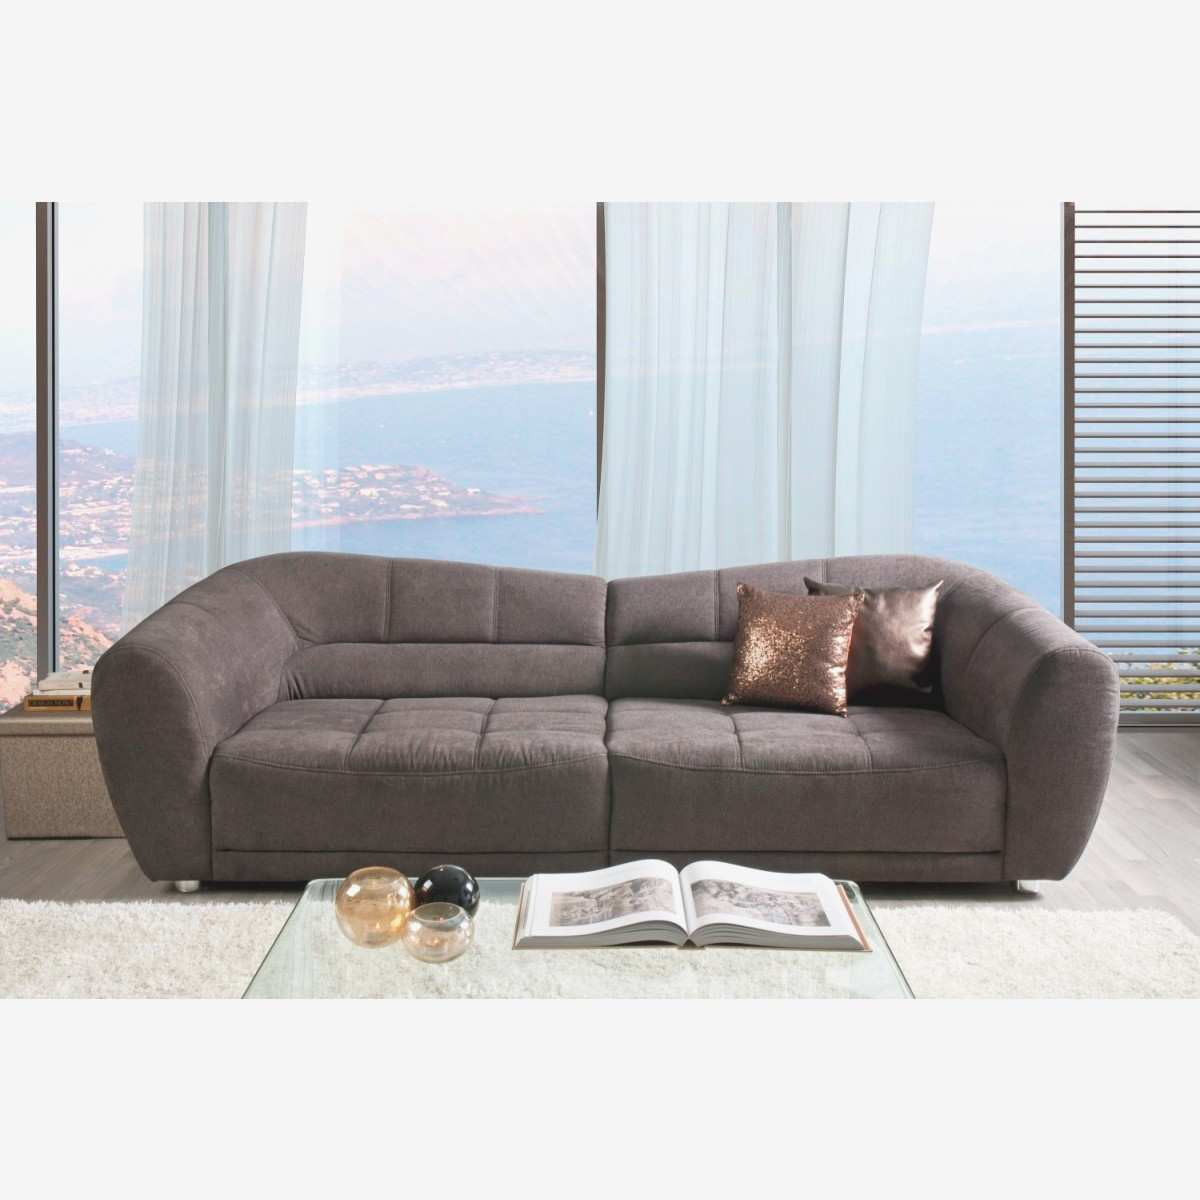 Sofas De 4 Plazas Fresco Nuevo sofá Xxl 4 Plazas Rihanna Ideas Salon Pinterest Of 48  Brillante sofas De 4 Plazas